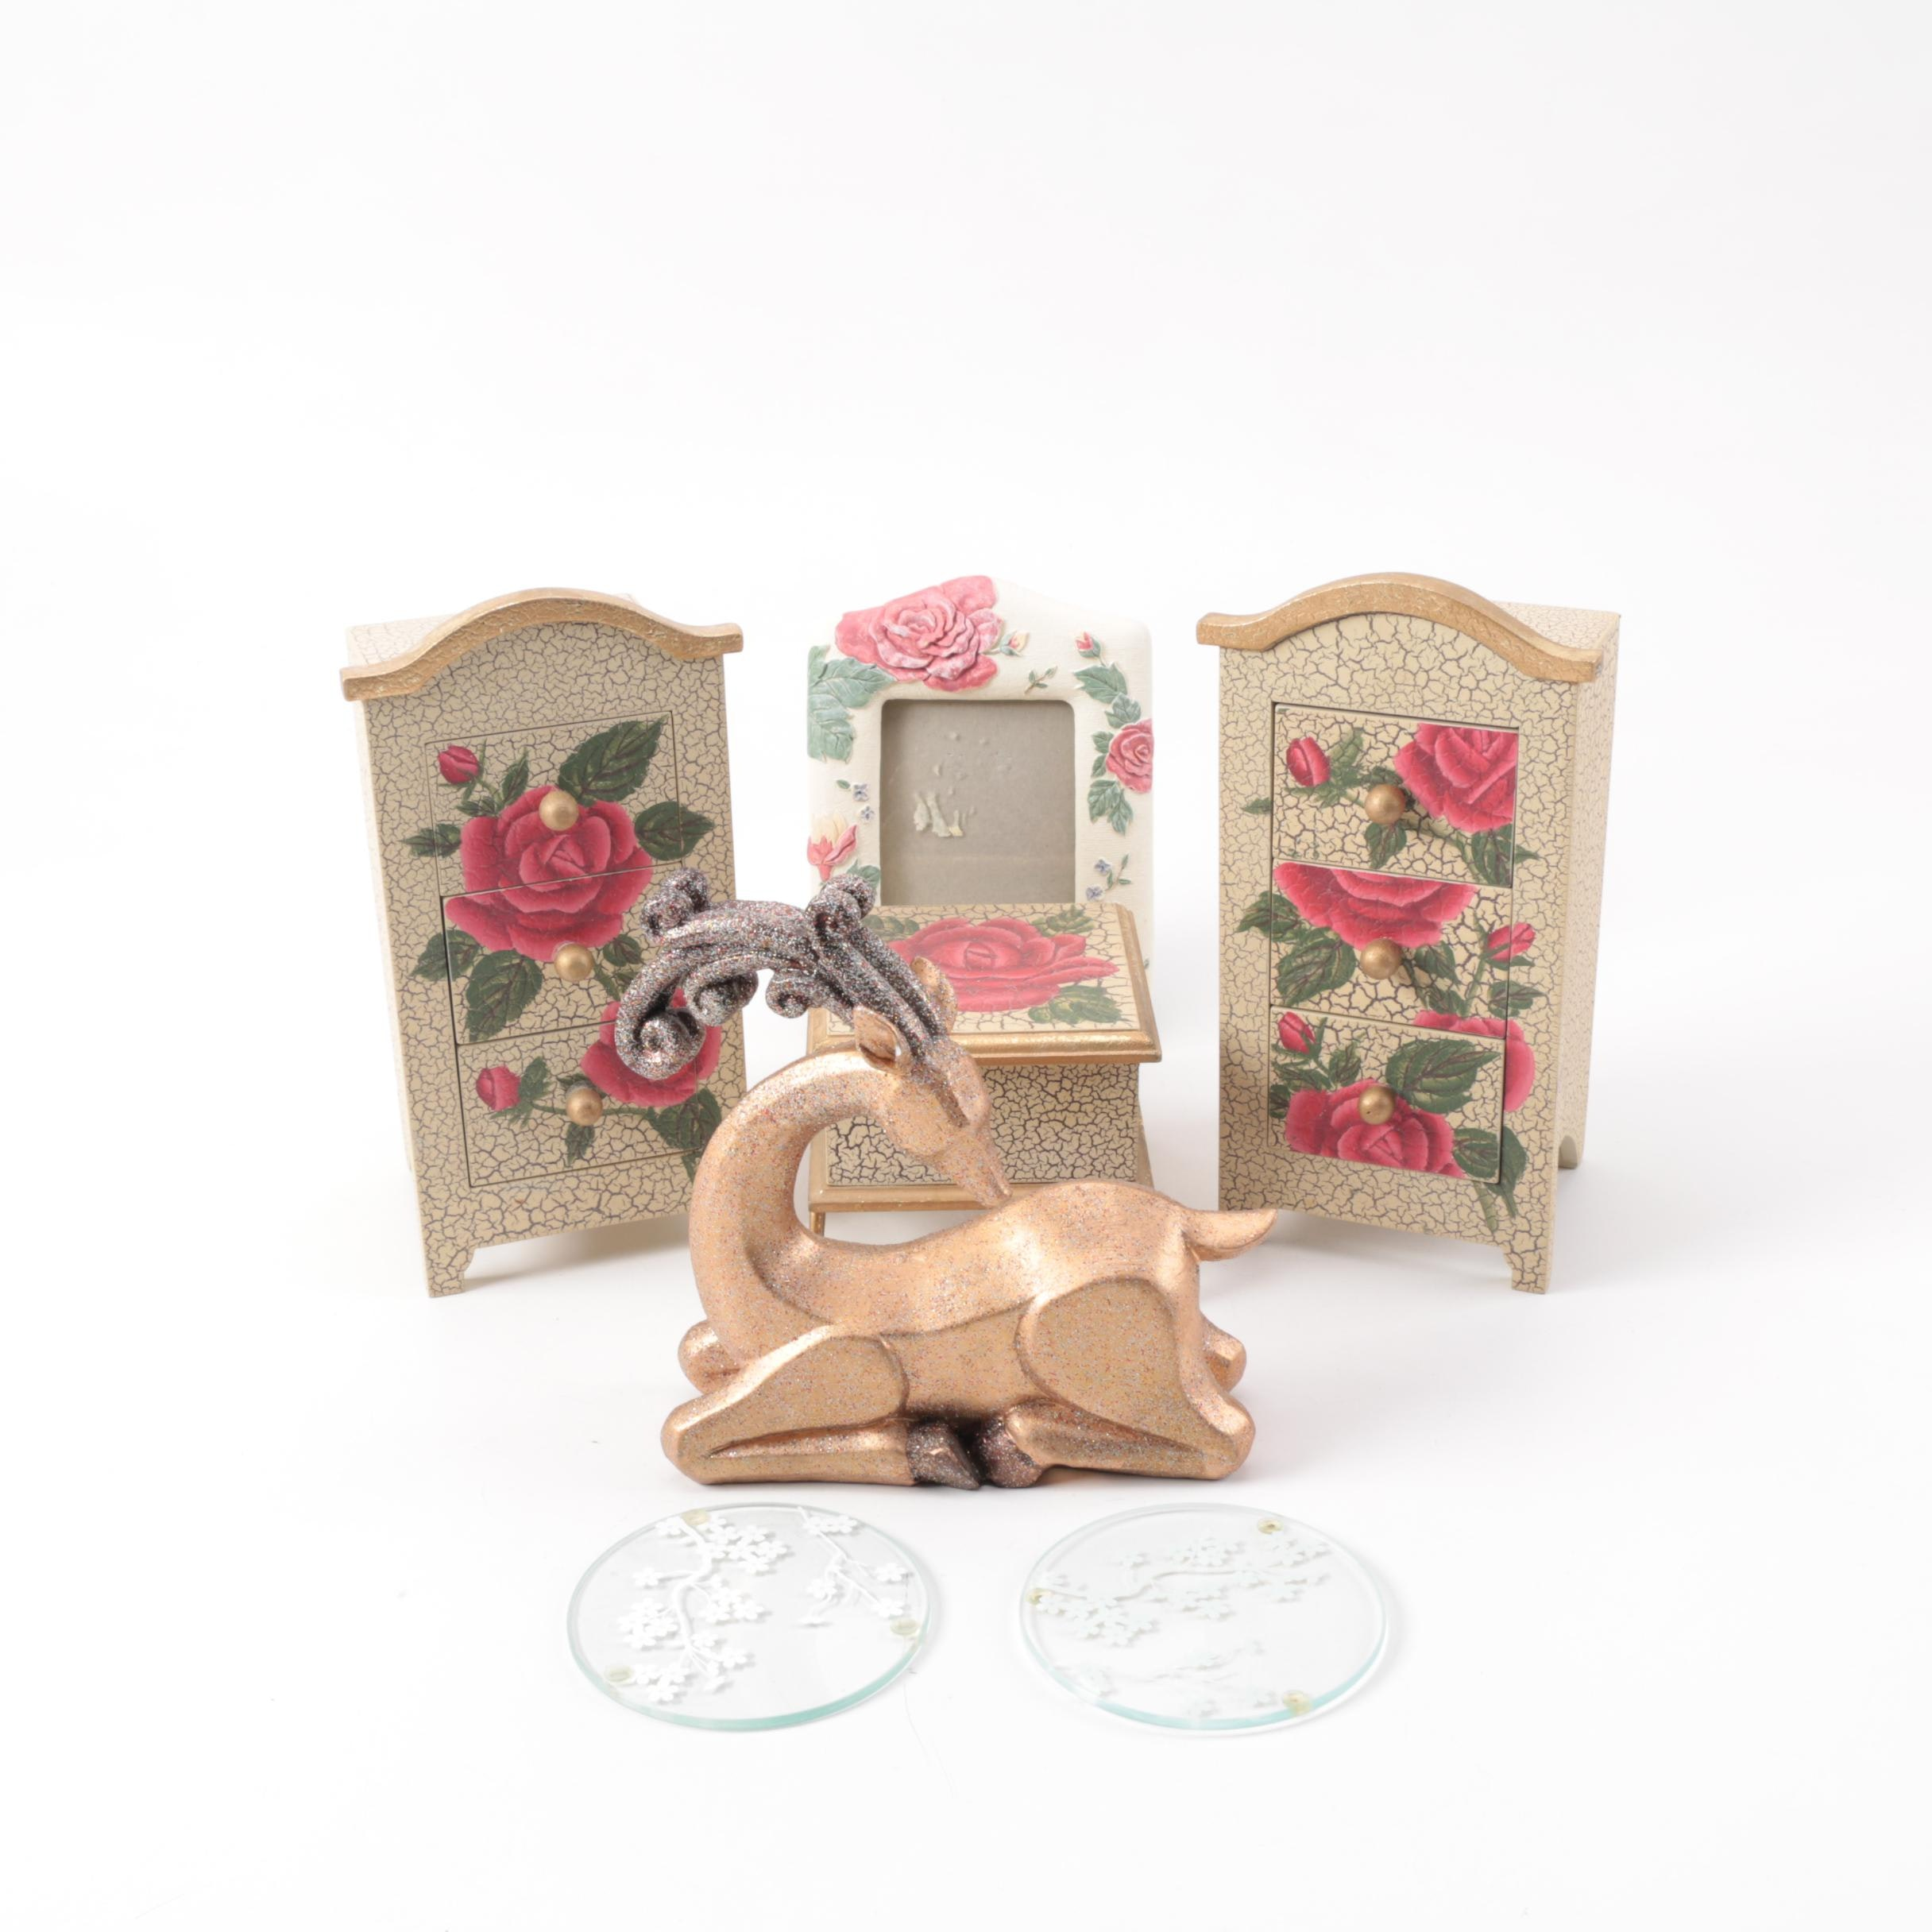 Trinket Boxes, Picture Frame, Figurine, and Coasters